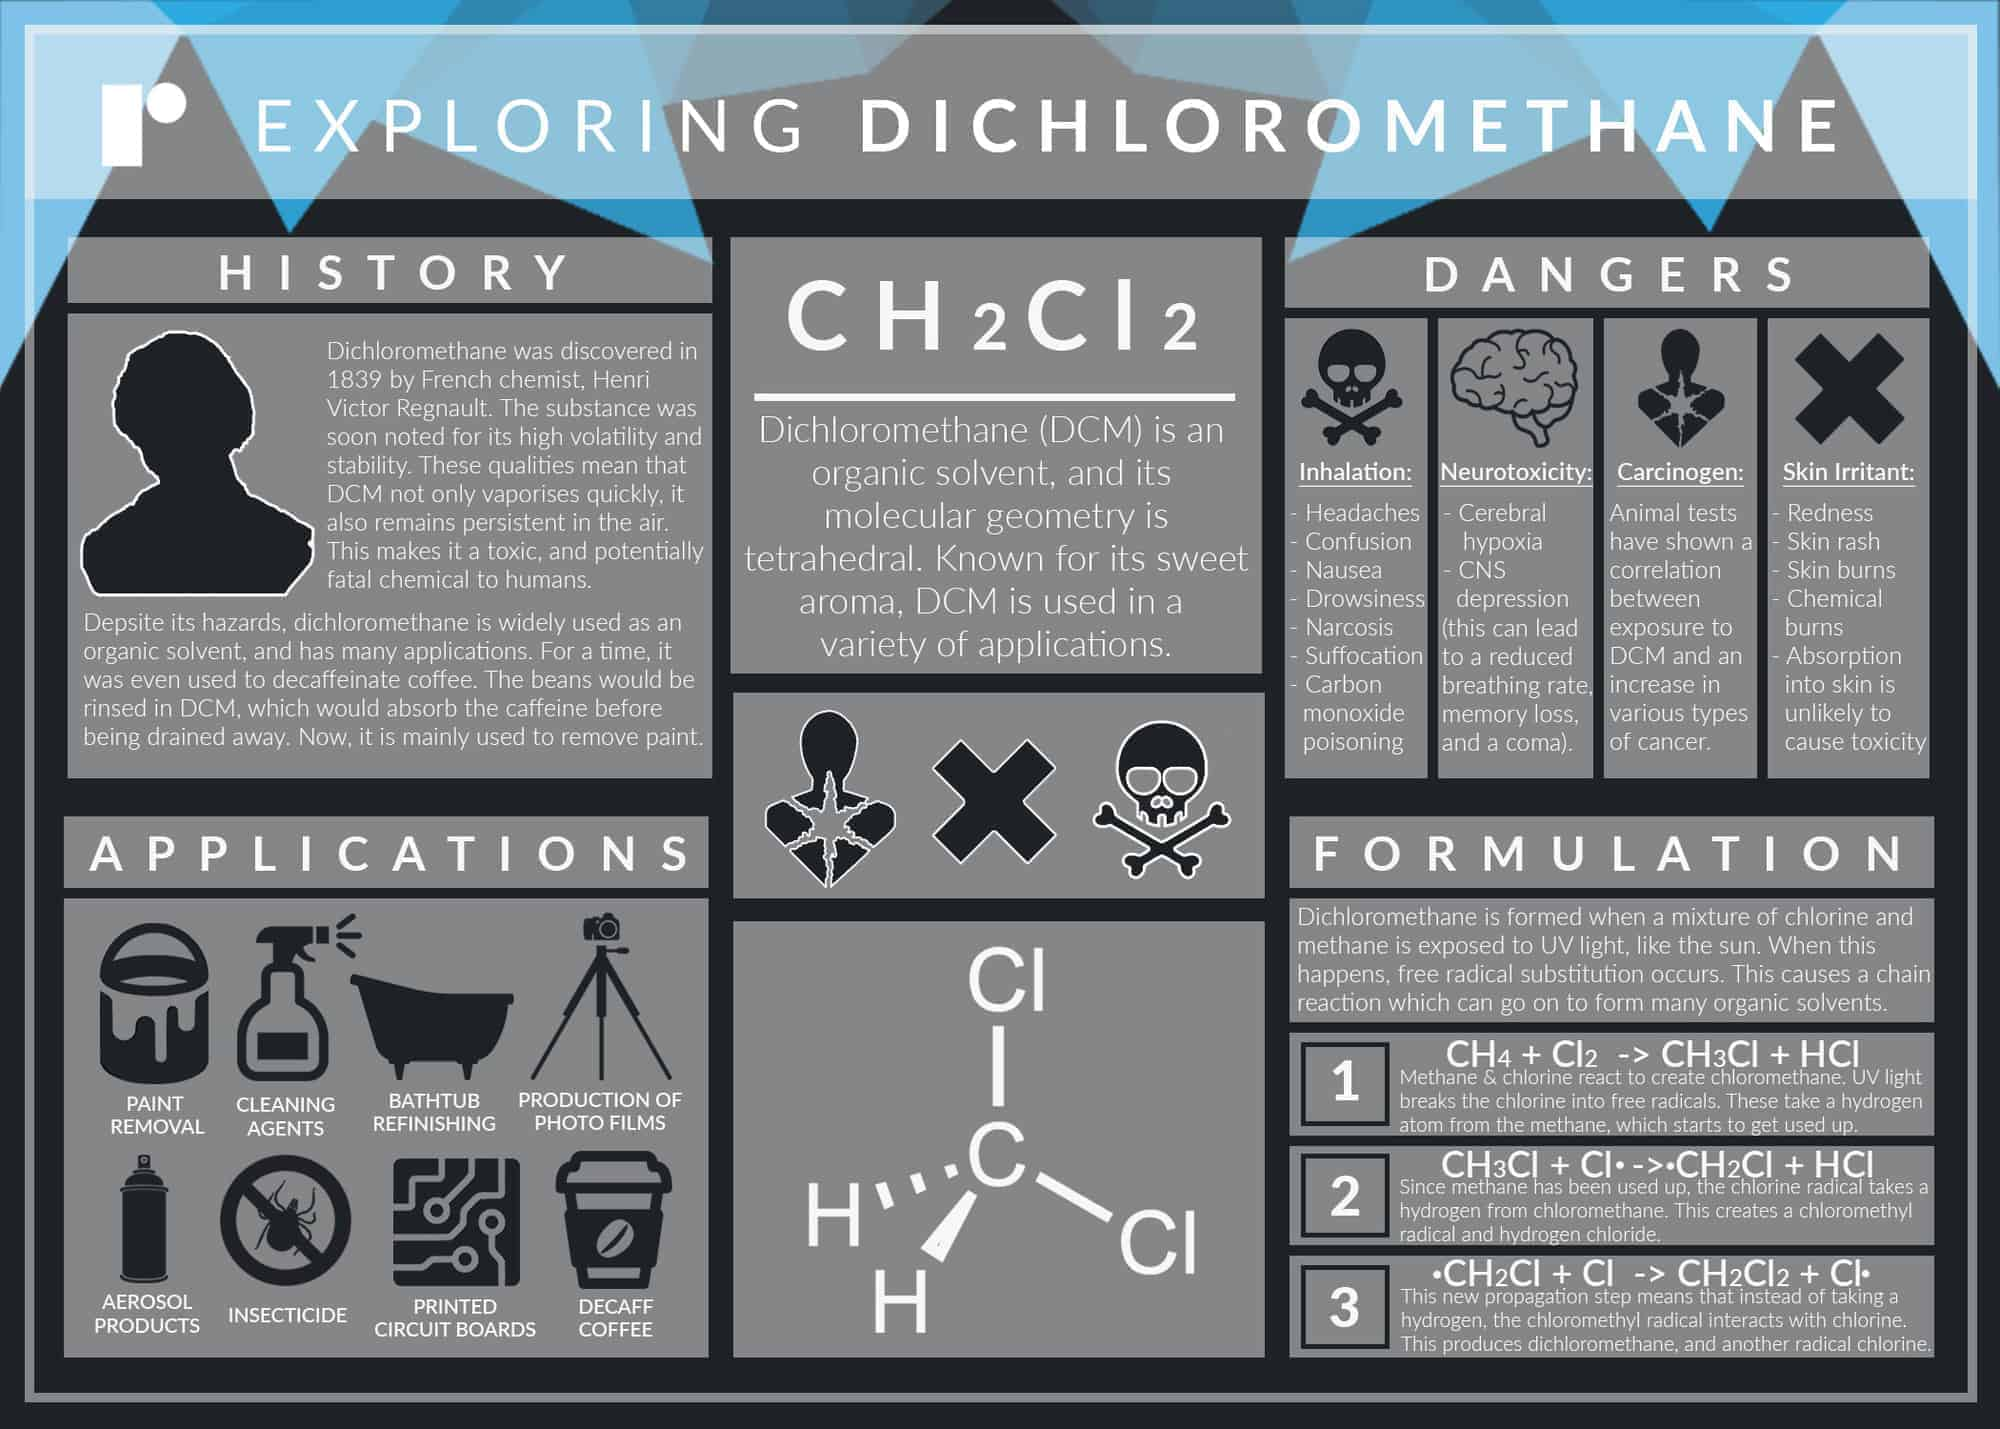 Dichloromethane - What is Dichloromethane?